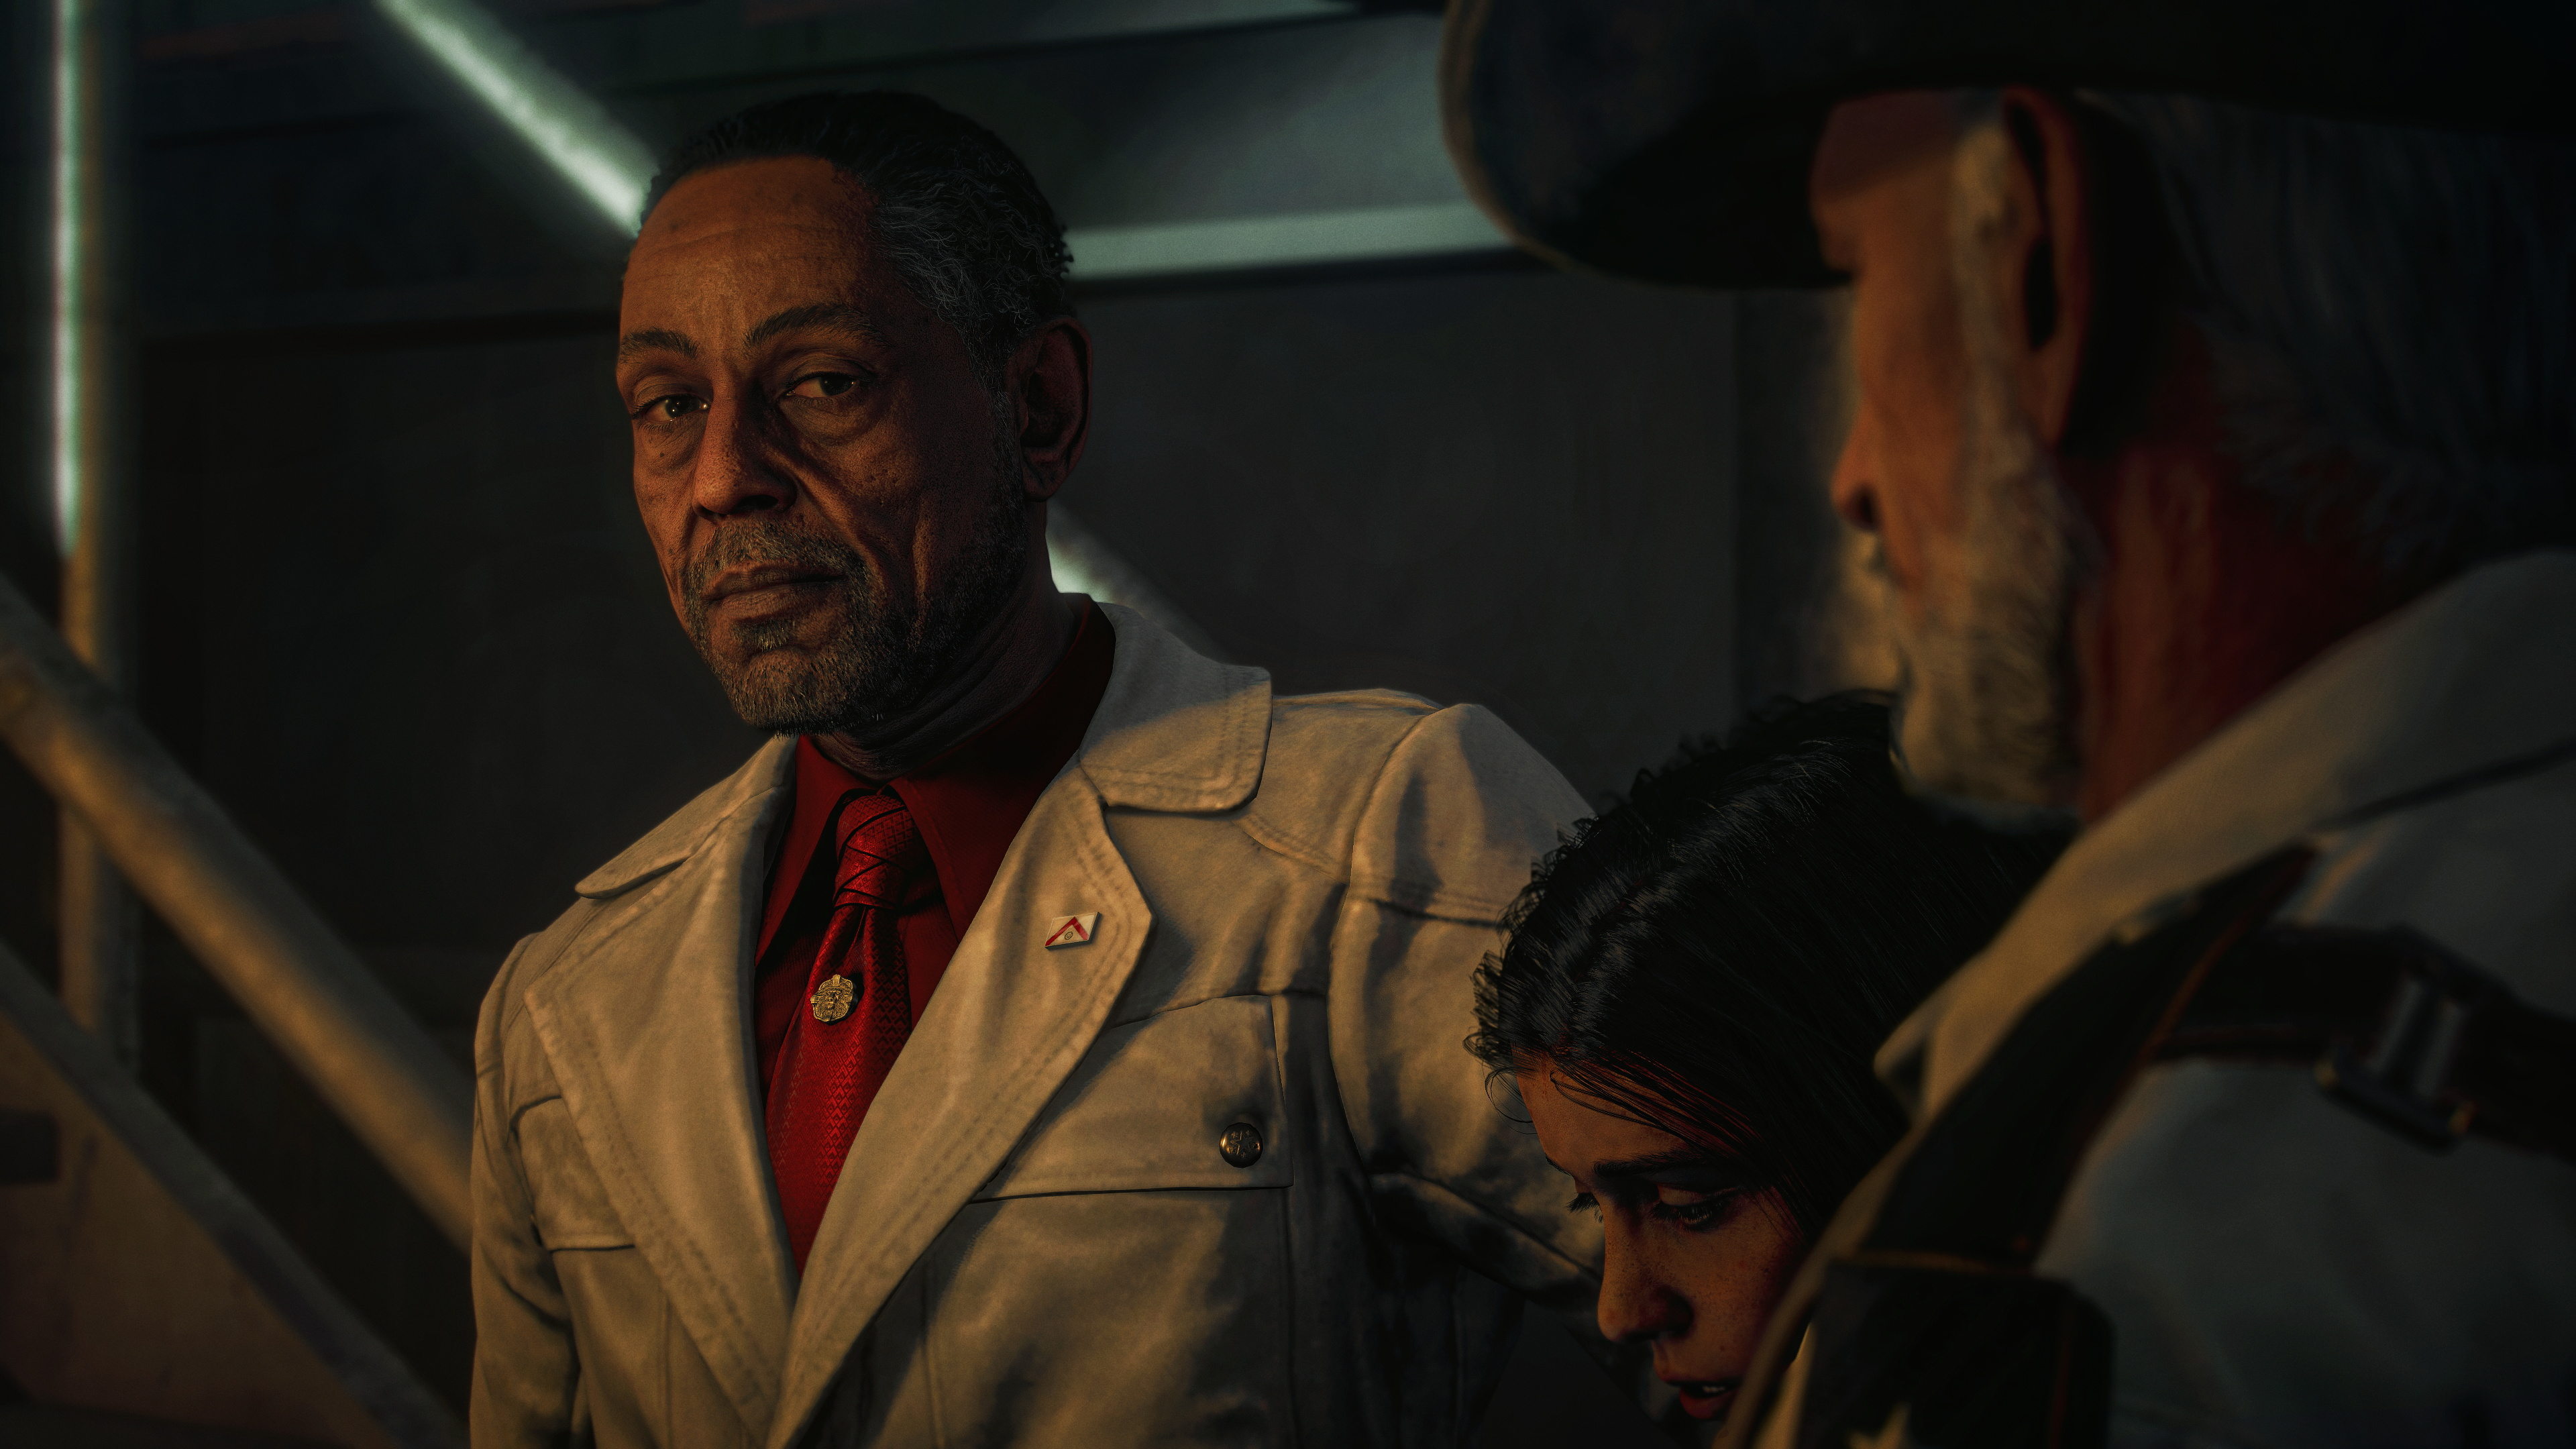 three people, two of them old men and one a boy between them, acknowledging each other silently in Far Cry 6